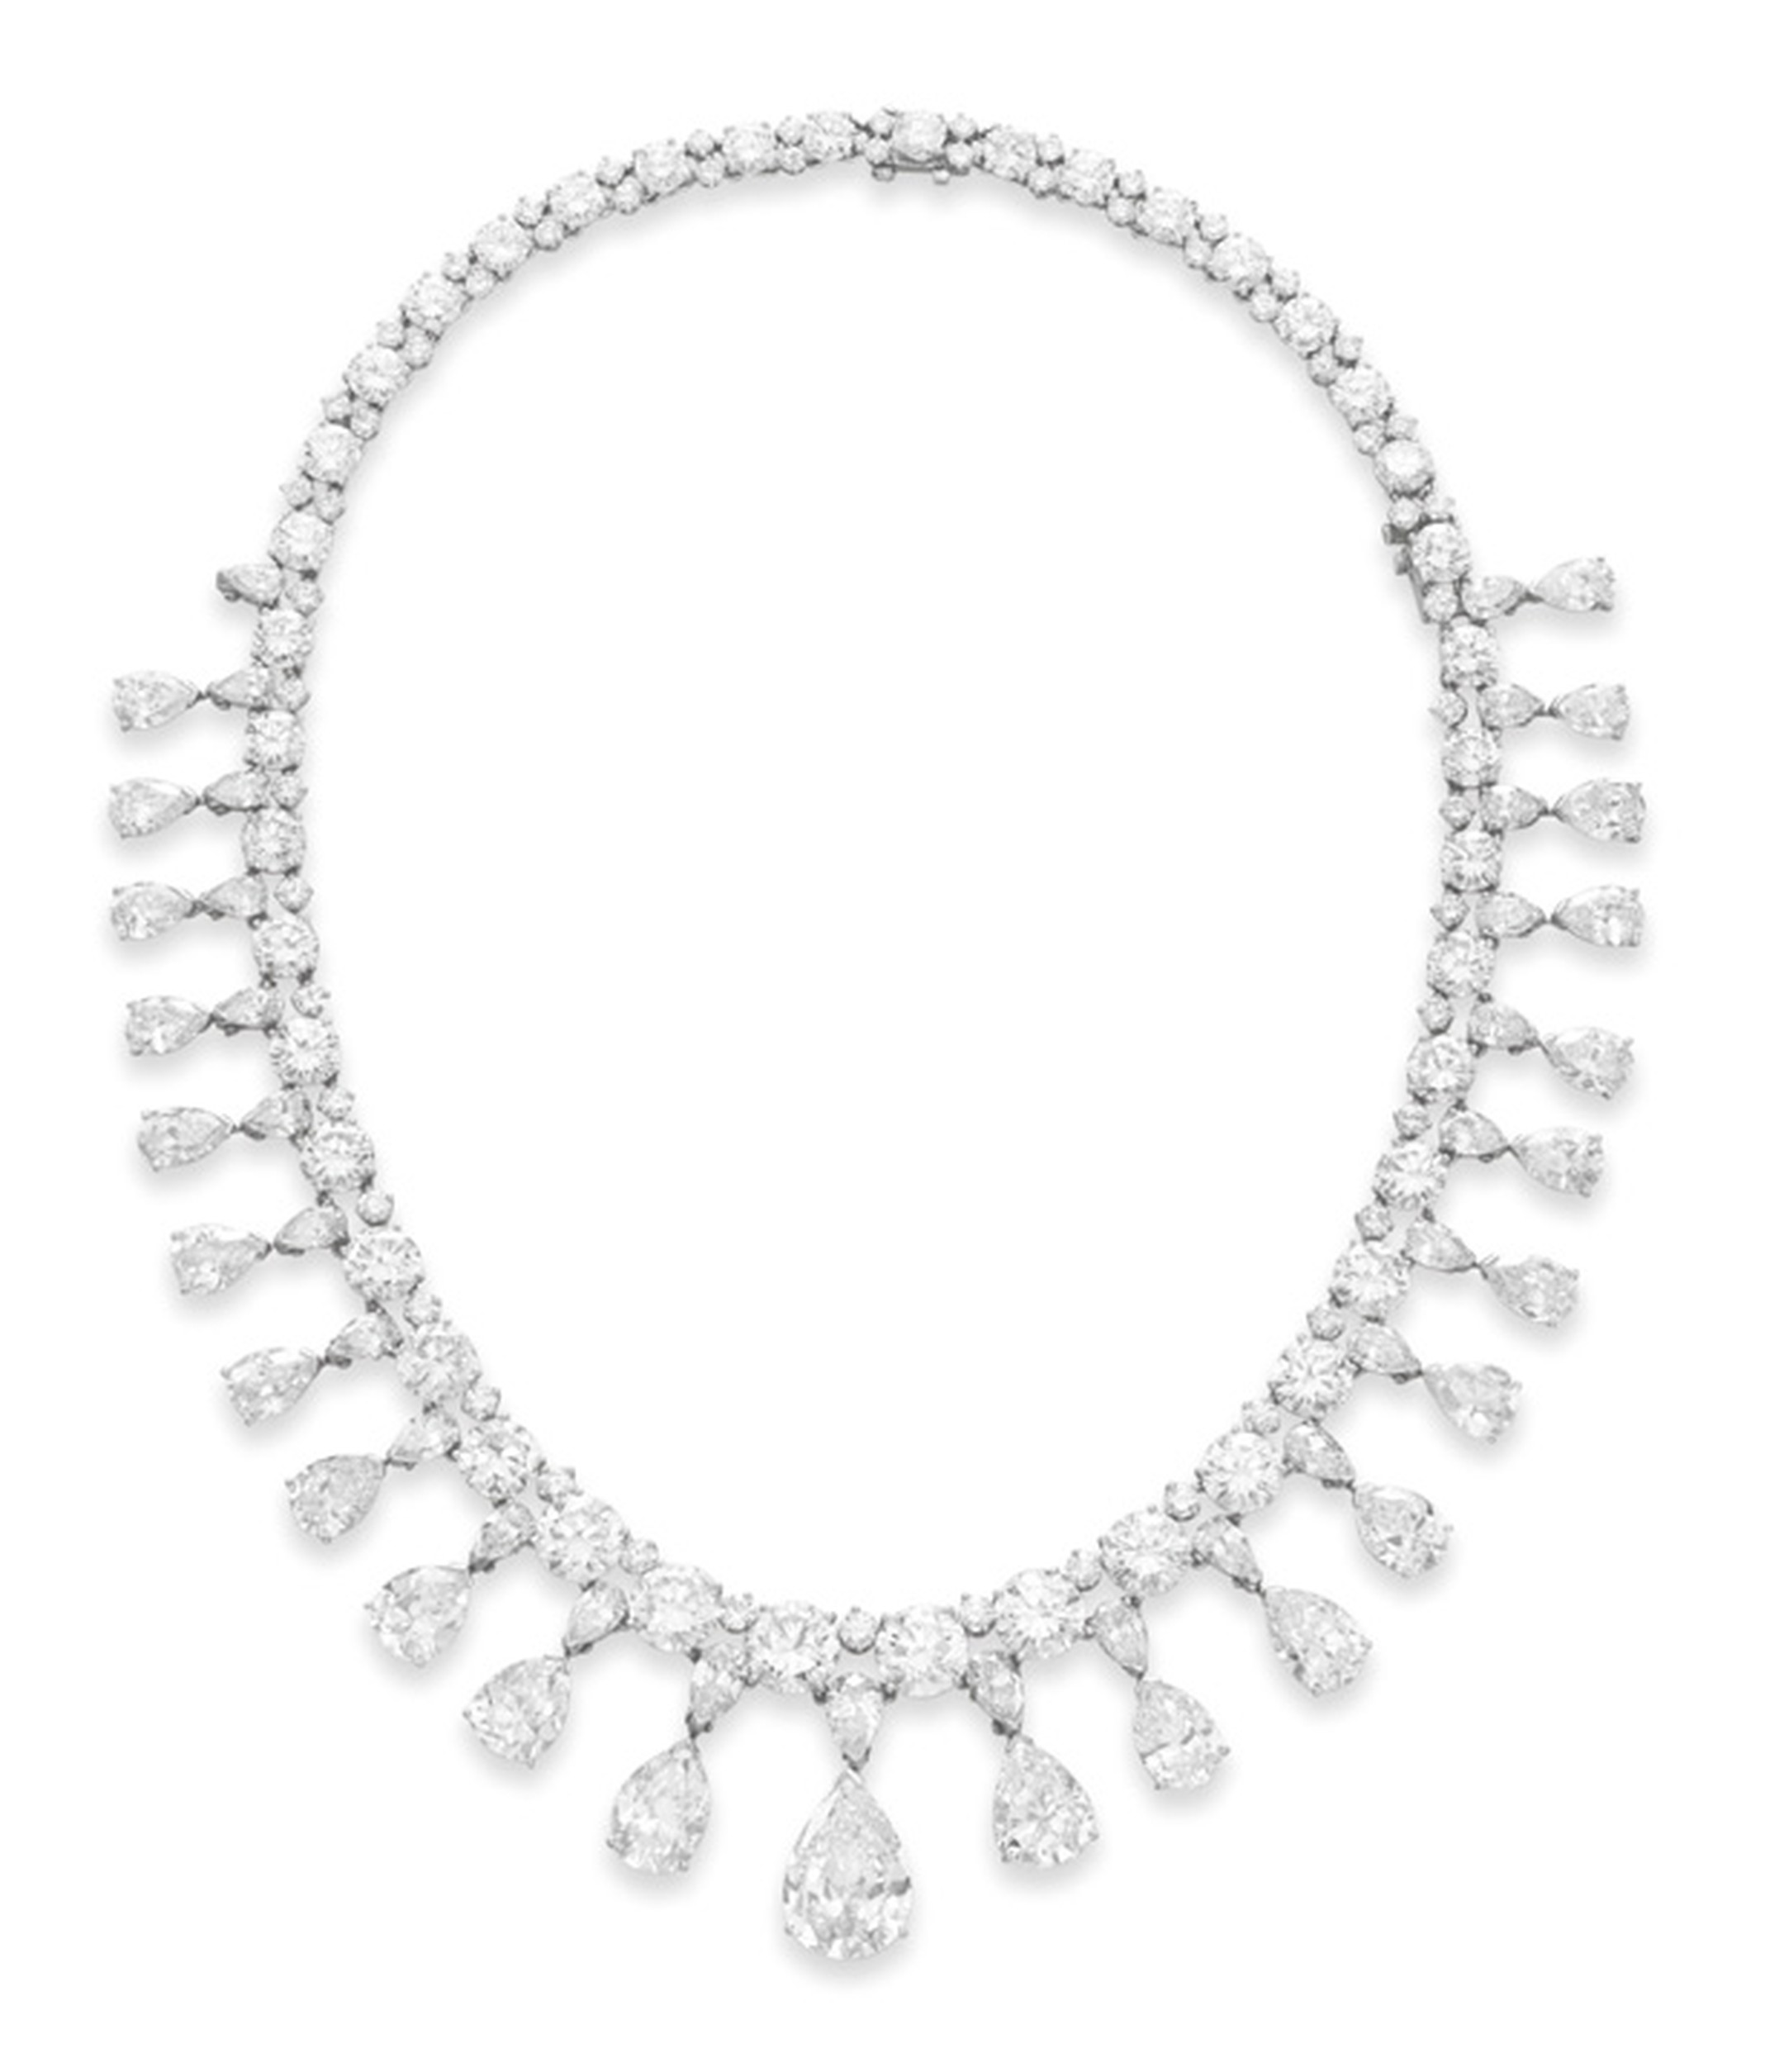 The Vanderbilt diamond necklace with an estimate of $400,000-$600,000